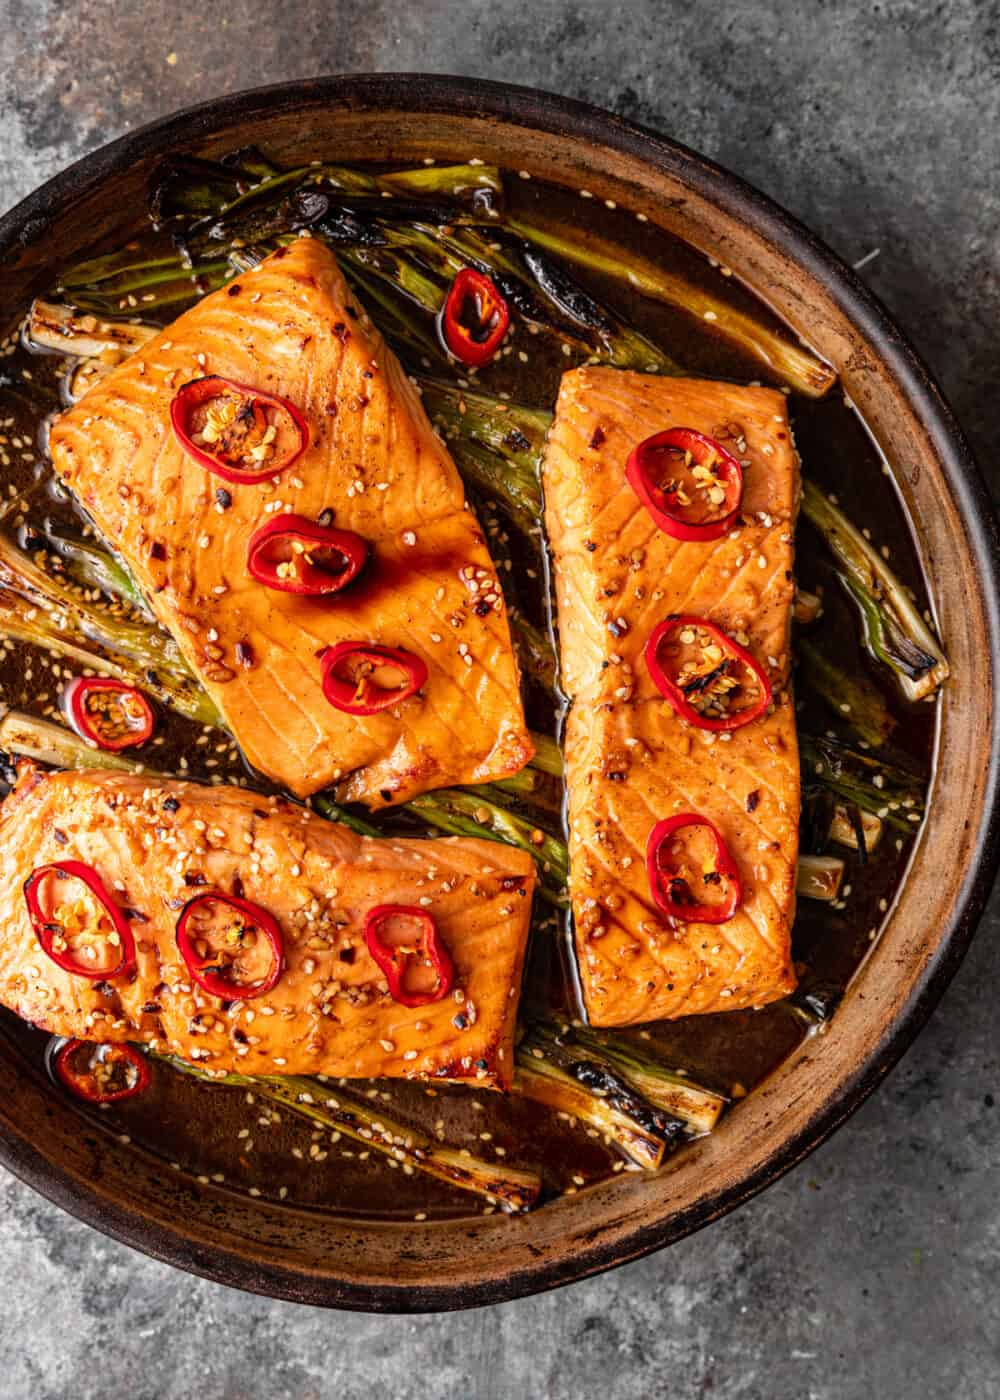 overhead image: round baking pan with three honey glazed salmon filets topped with slices of red chili peppers